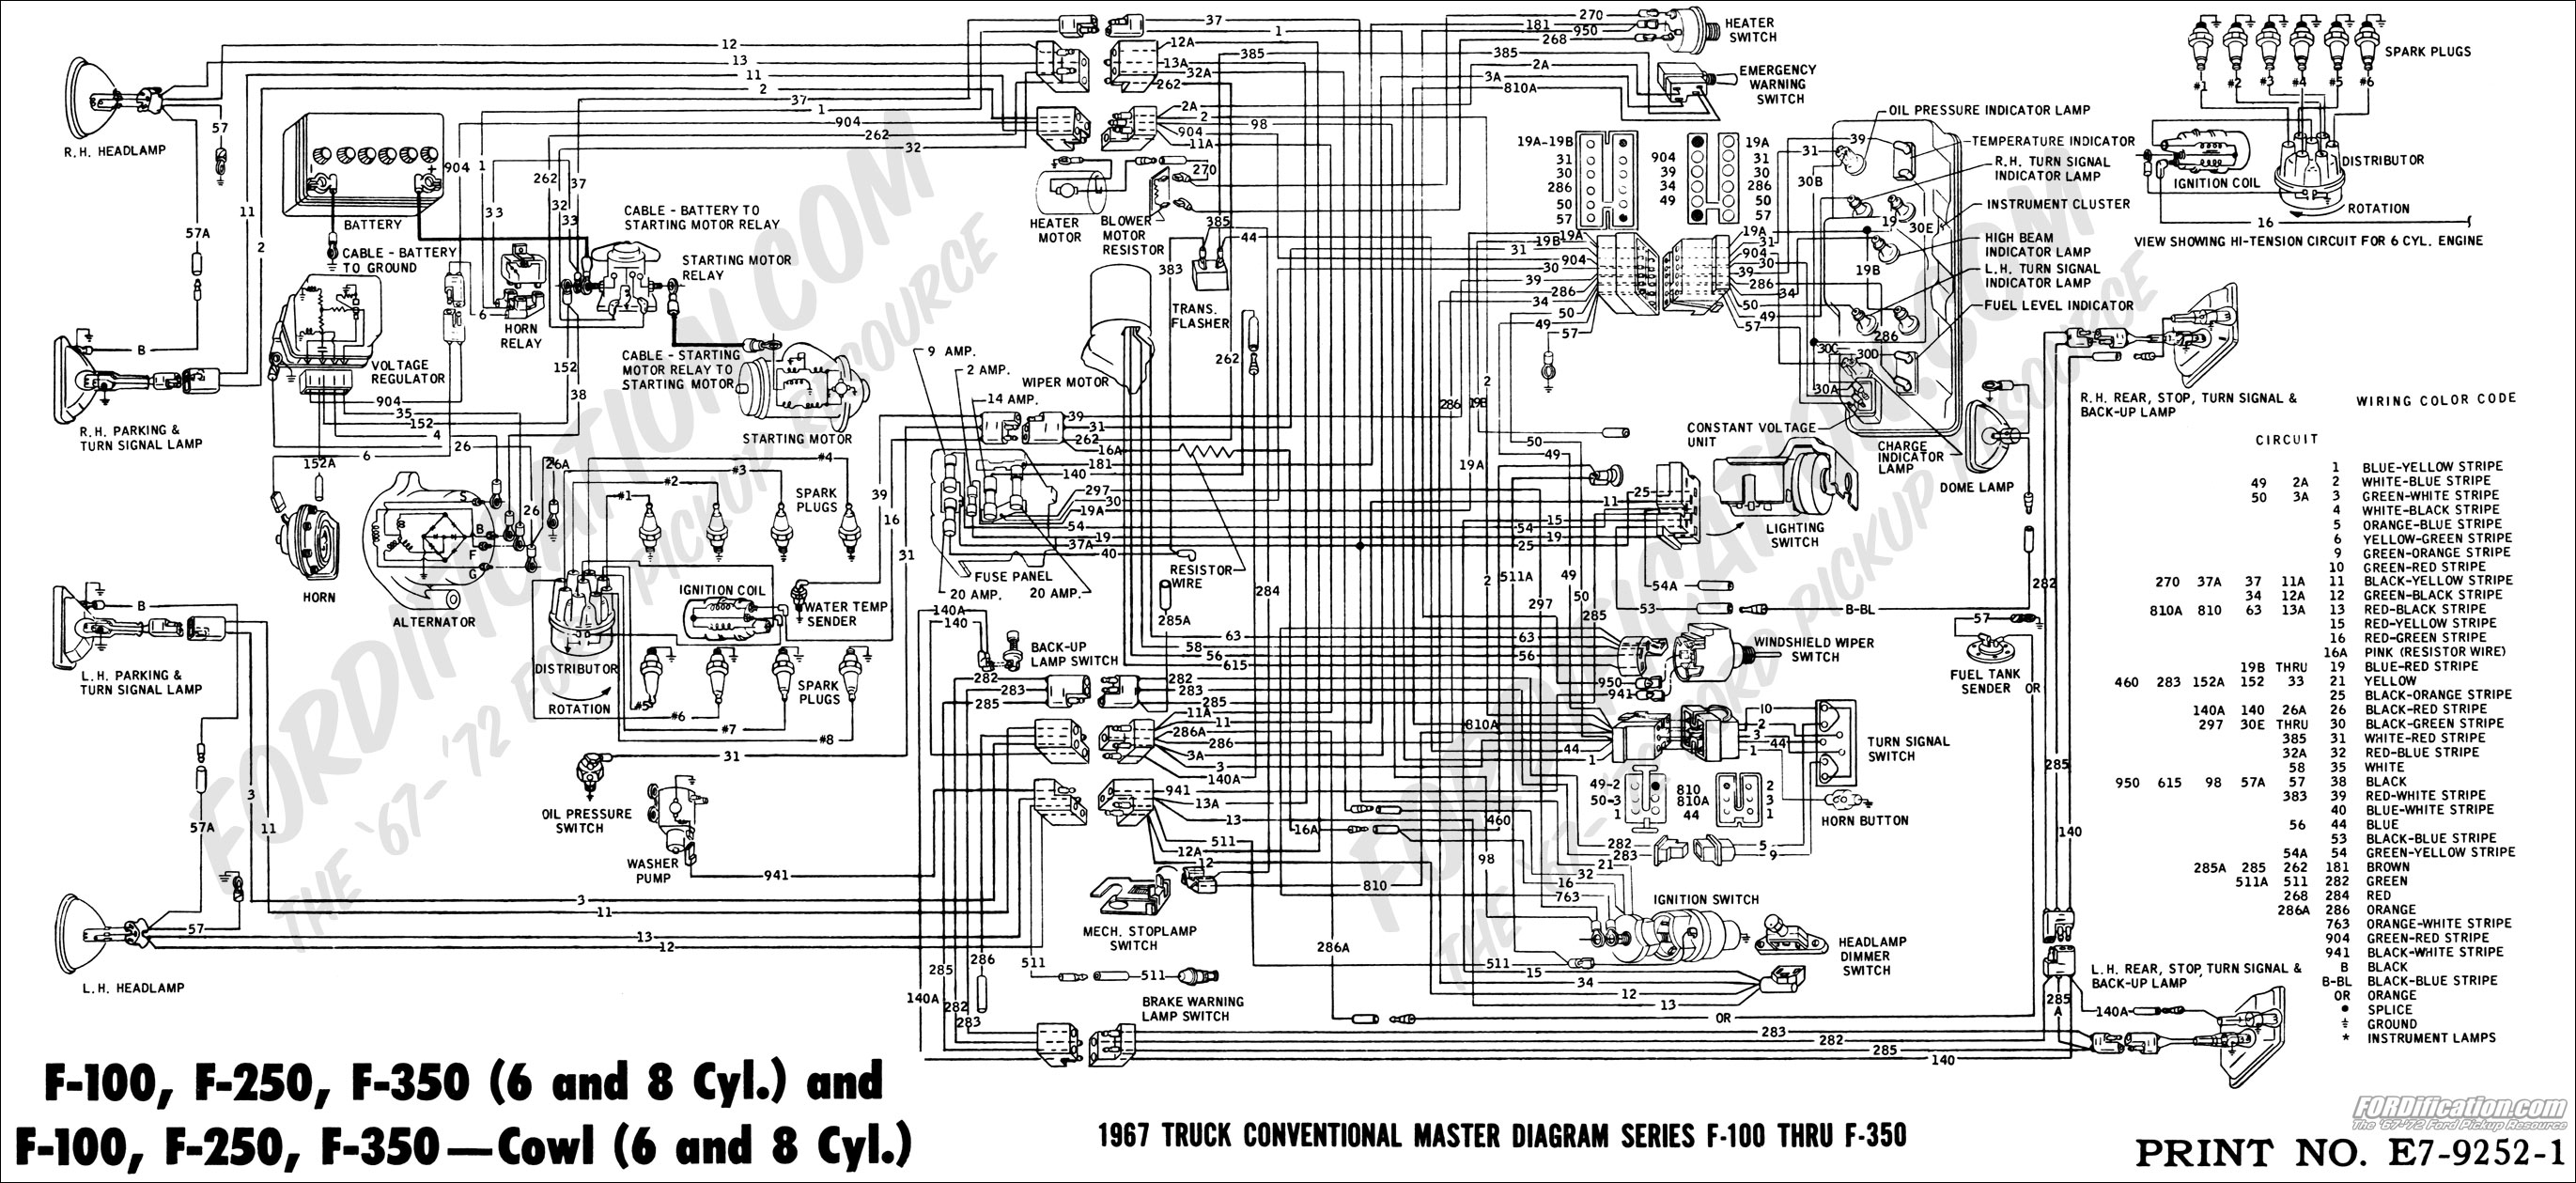 67masterdiagram 1992 f150 wiring diagram neutral wiring diagram 1992 f150 \u2022 wiring 1995 ford f150 wiring schematics at n-0.co